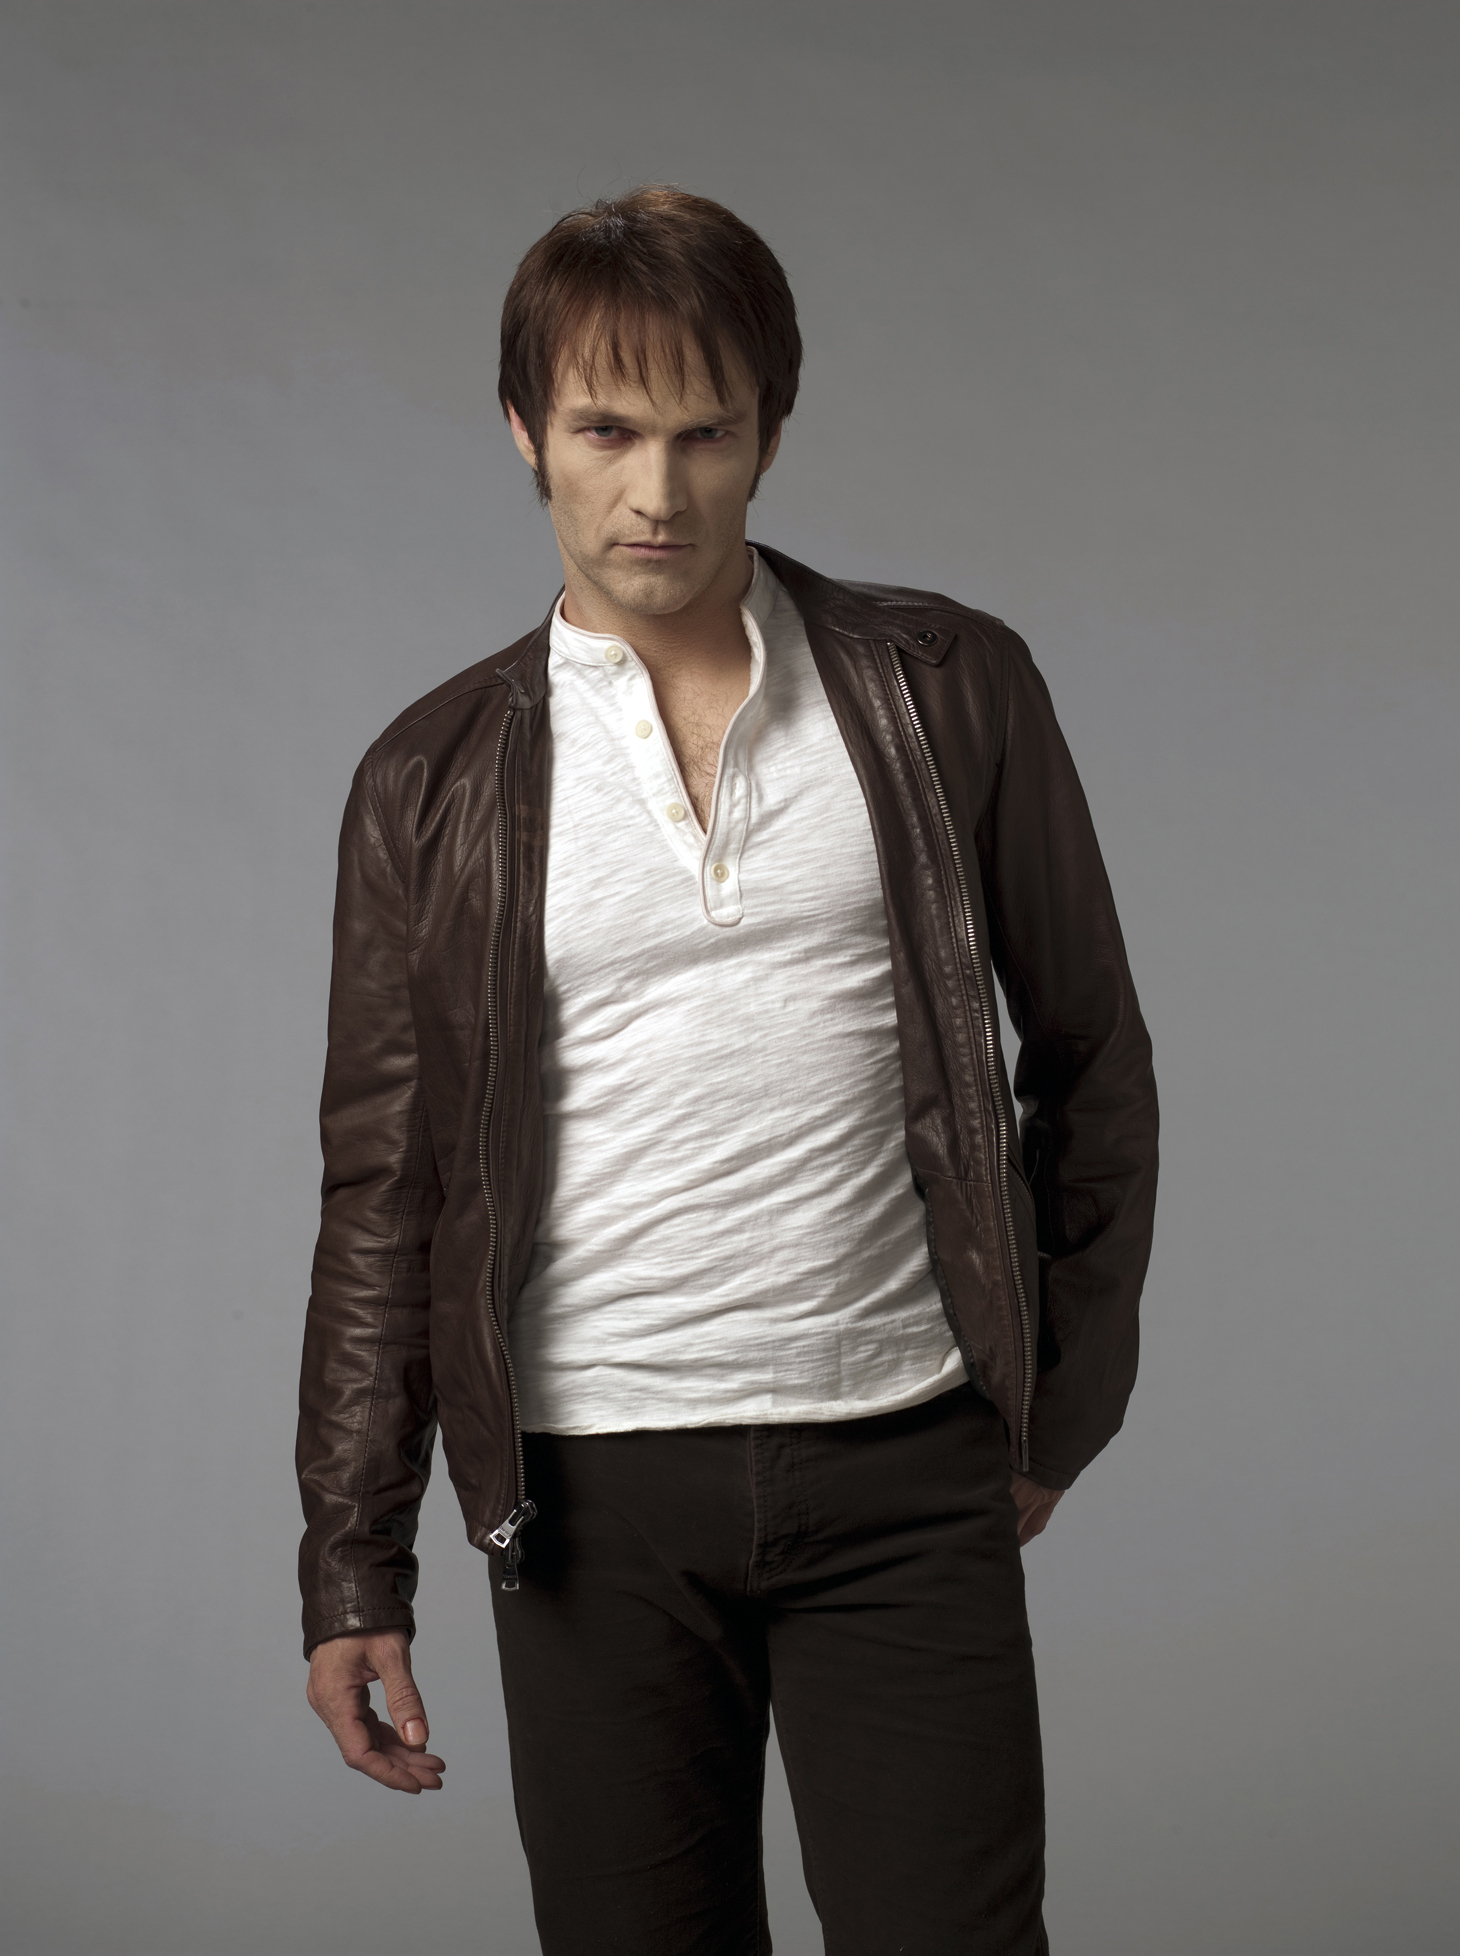 Stephen Moyer - Photo Colection